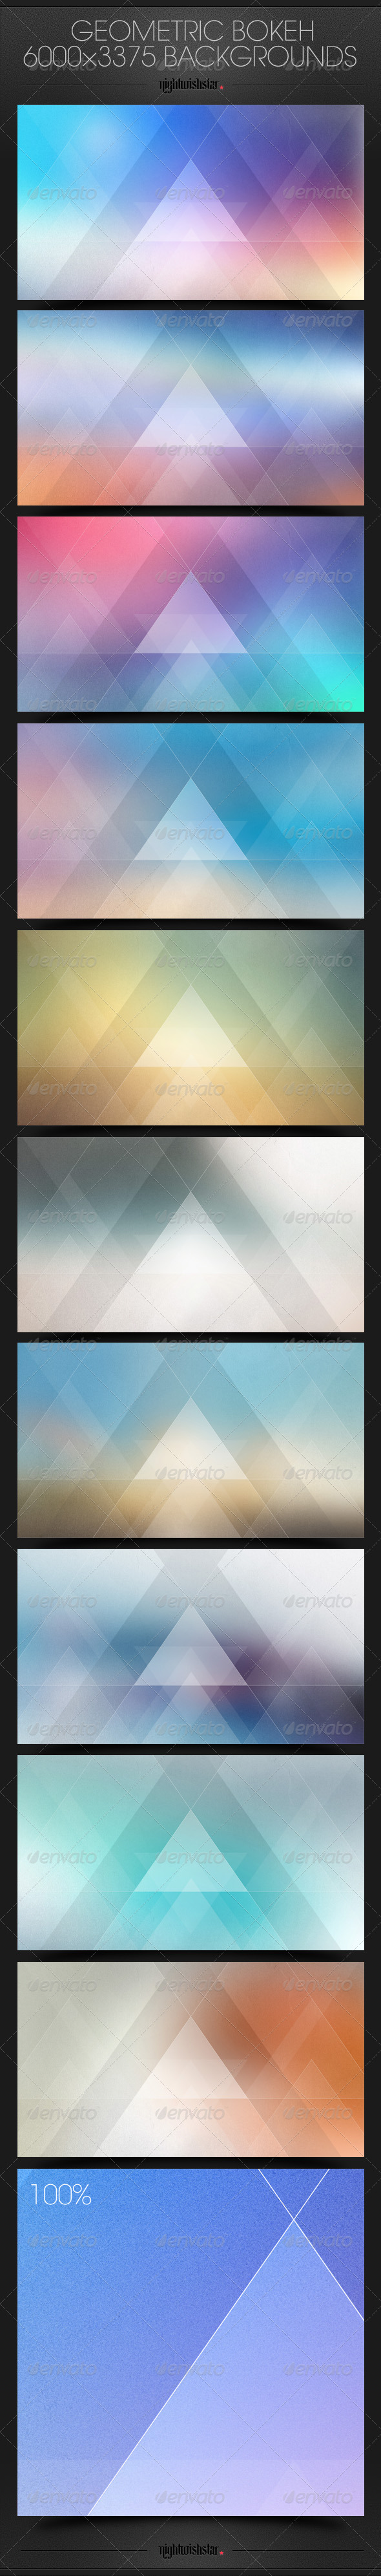 GraphicRiver Geometric Bokeh Triangles Backgrounds 6509507